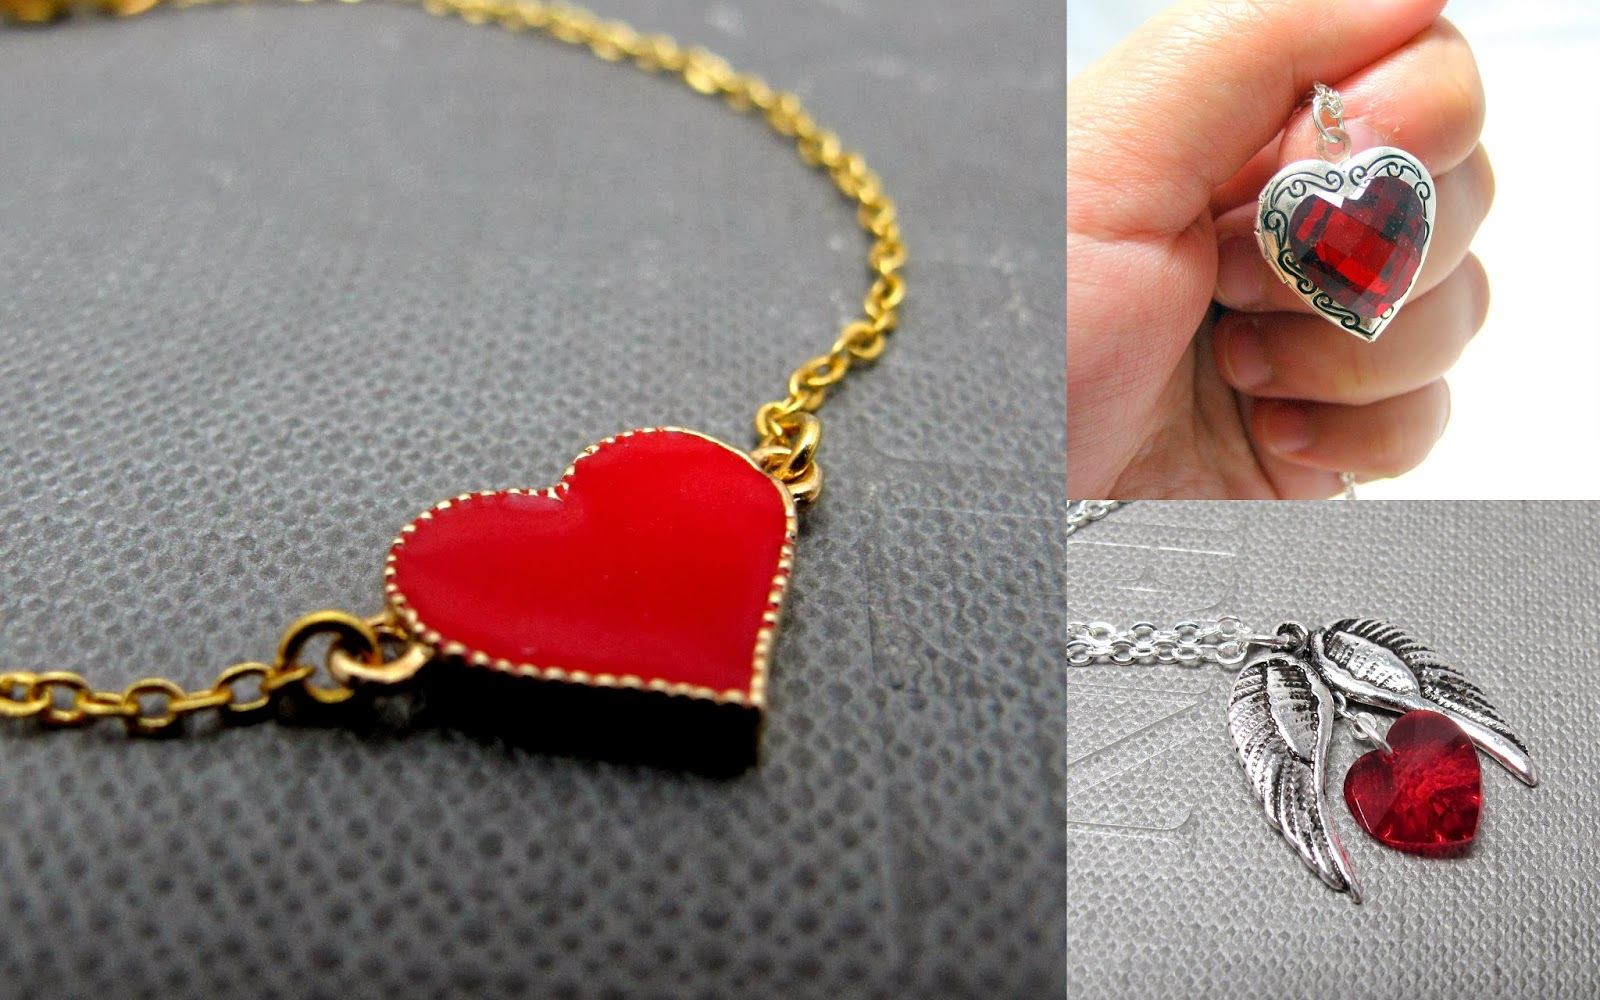 https://www.etsy.com/shop/Piggy/search?search_query=red+love&order=date_desc&view_type=list&ref=shop_search